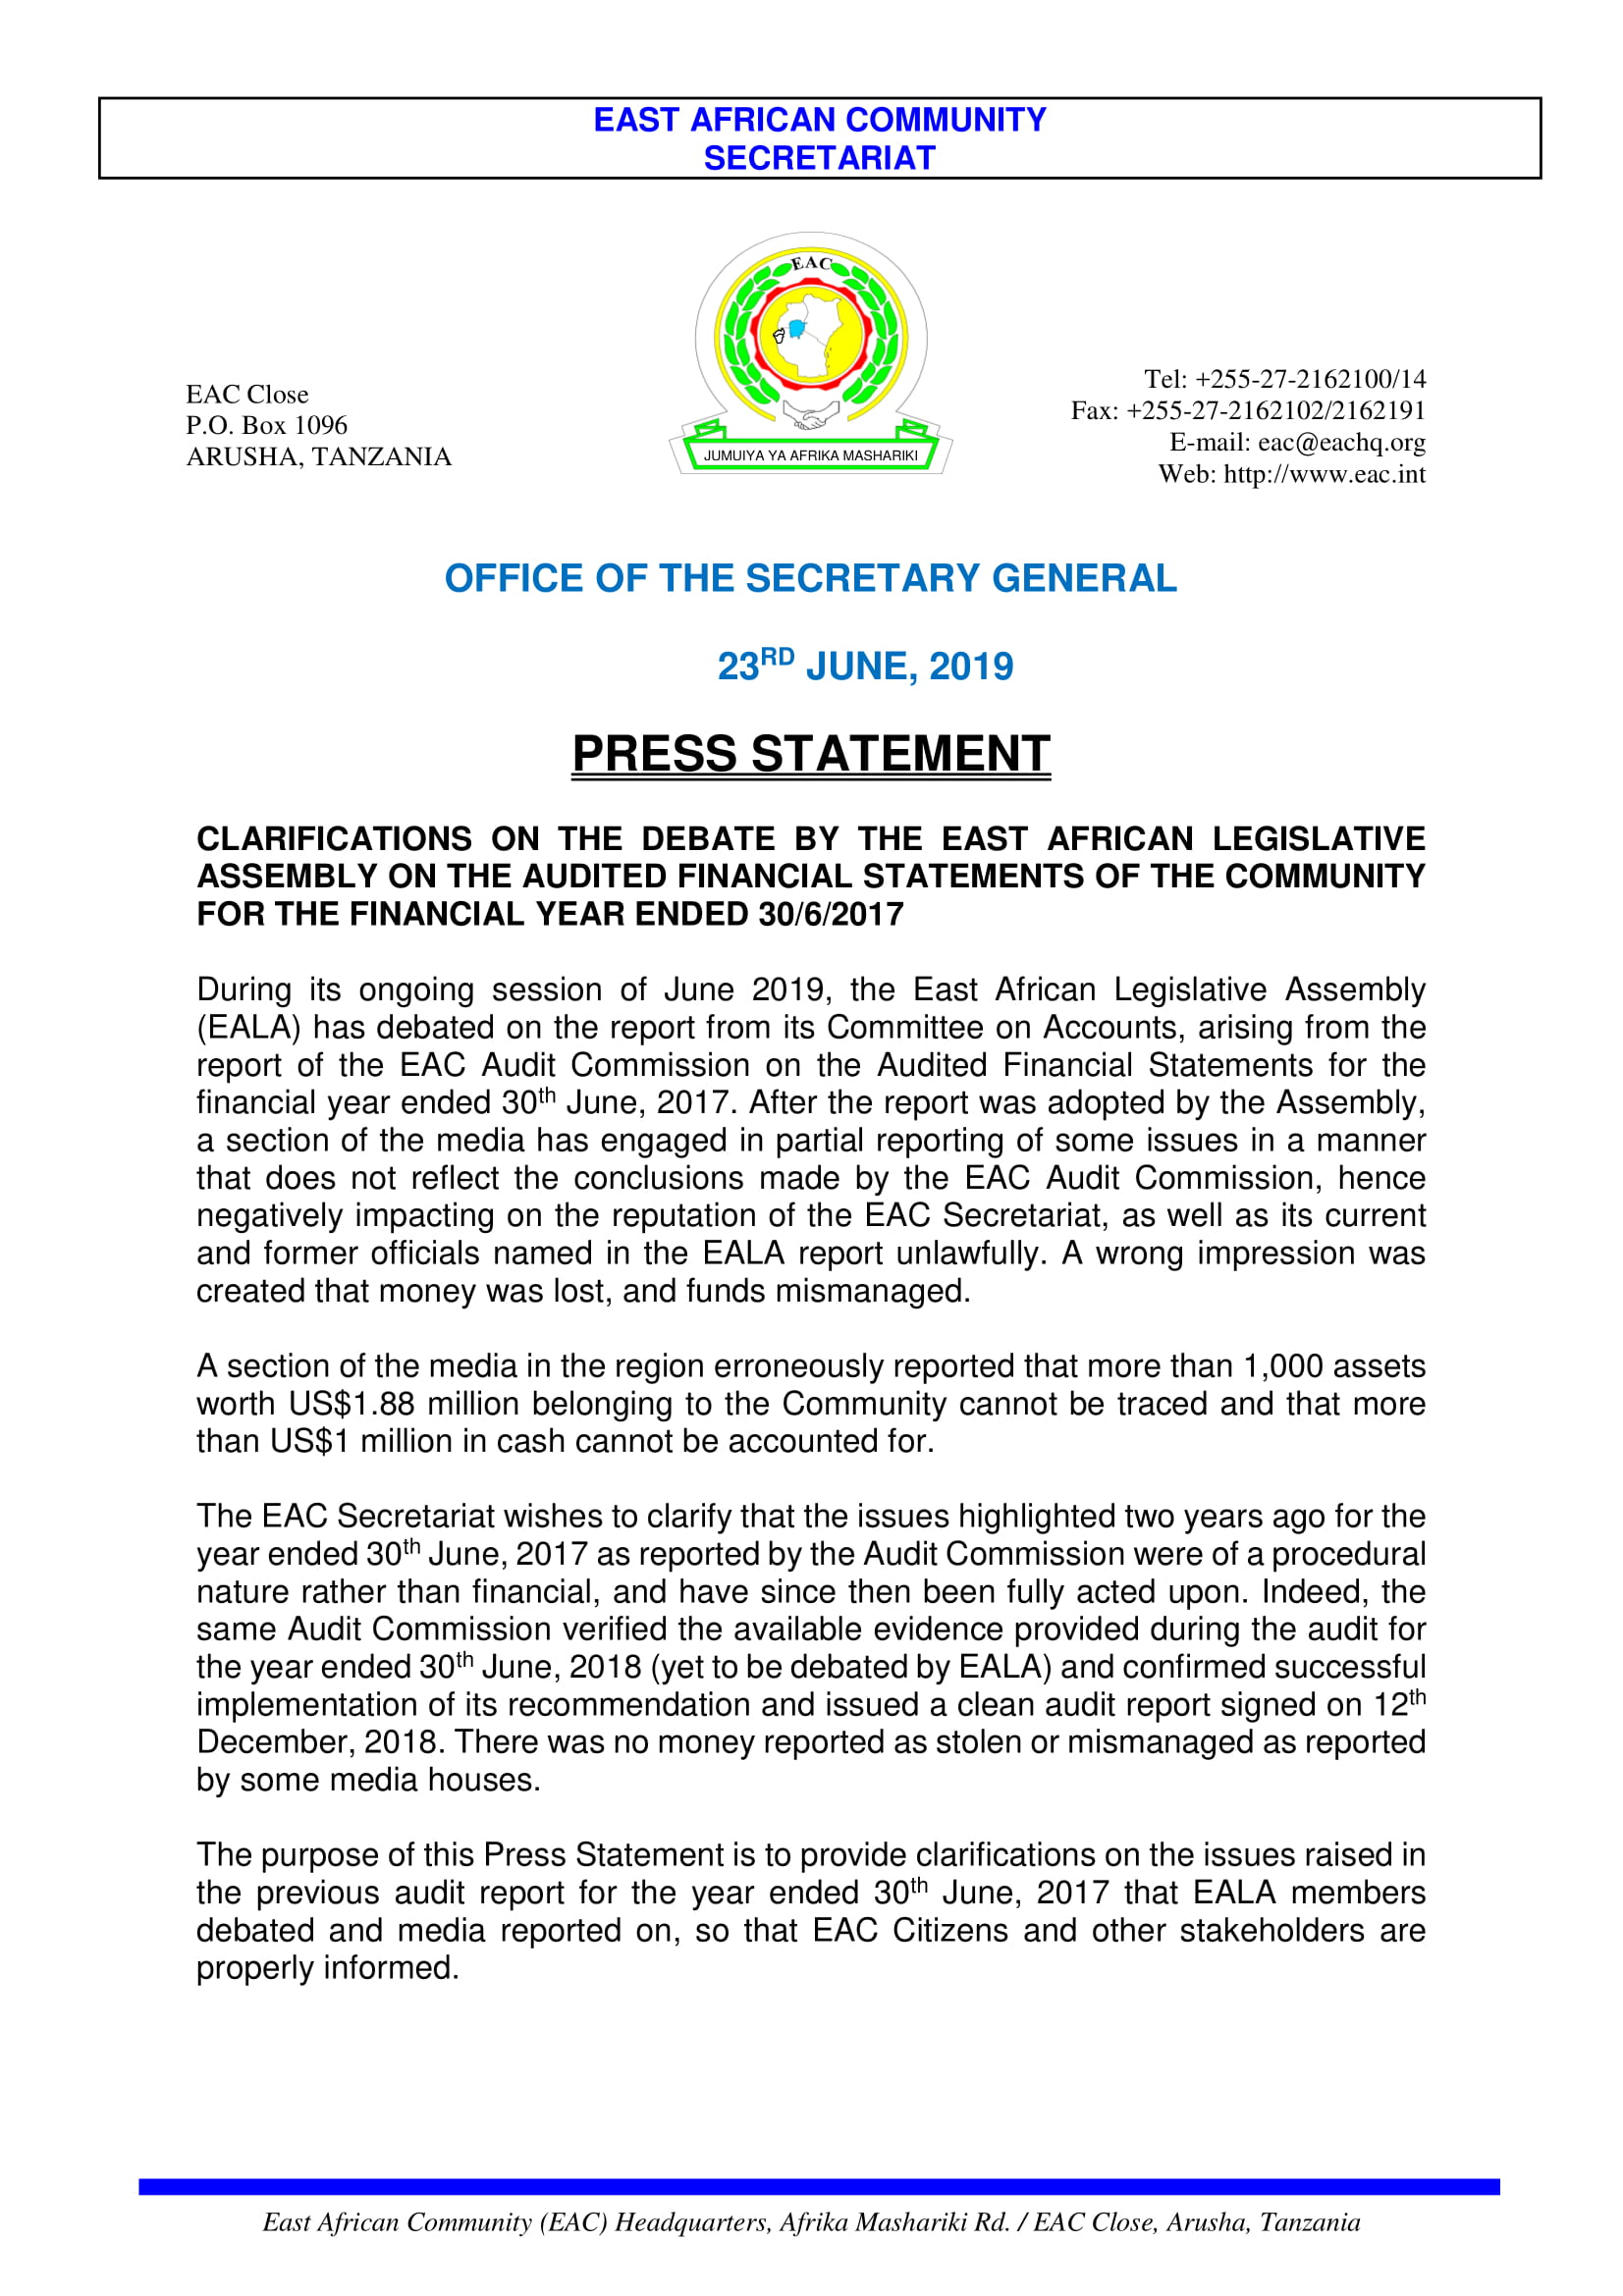 PRESS STATEMENT CLARIFICATION BY THE EAC SECRETARIAT OF AUDIT ISSUES AS DEBATED BY EALA IN JUNE 2019 1